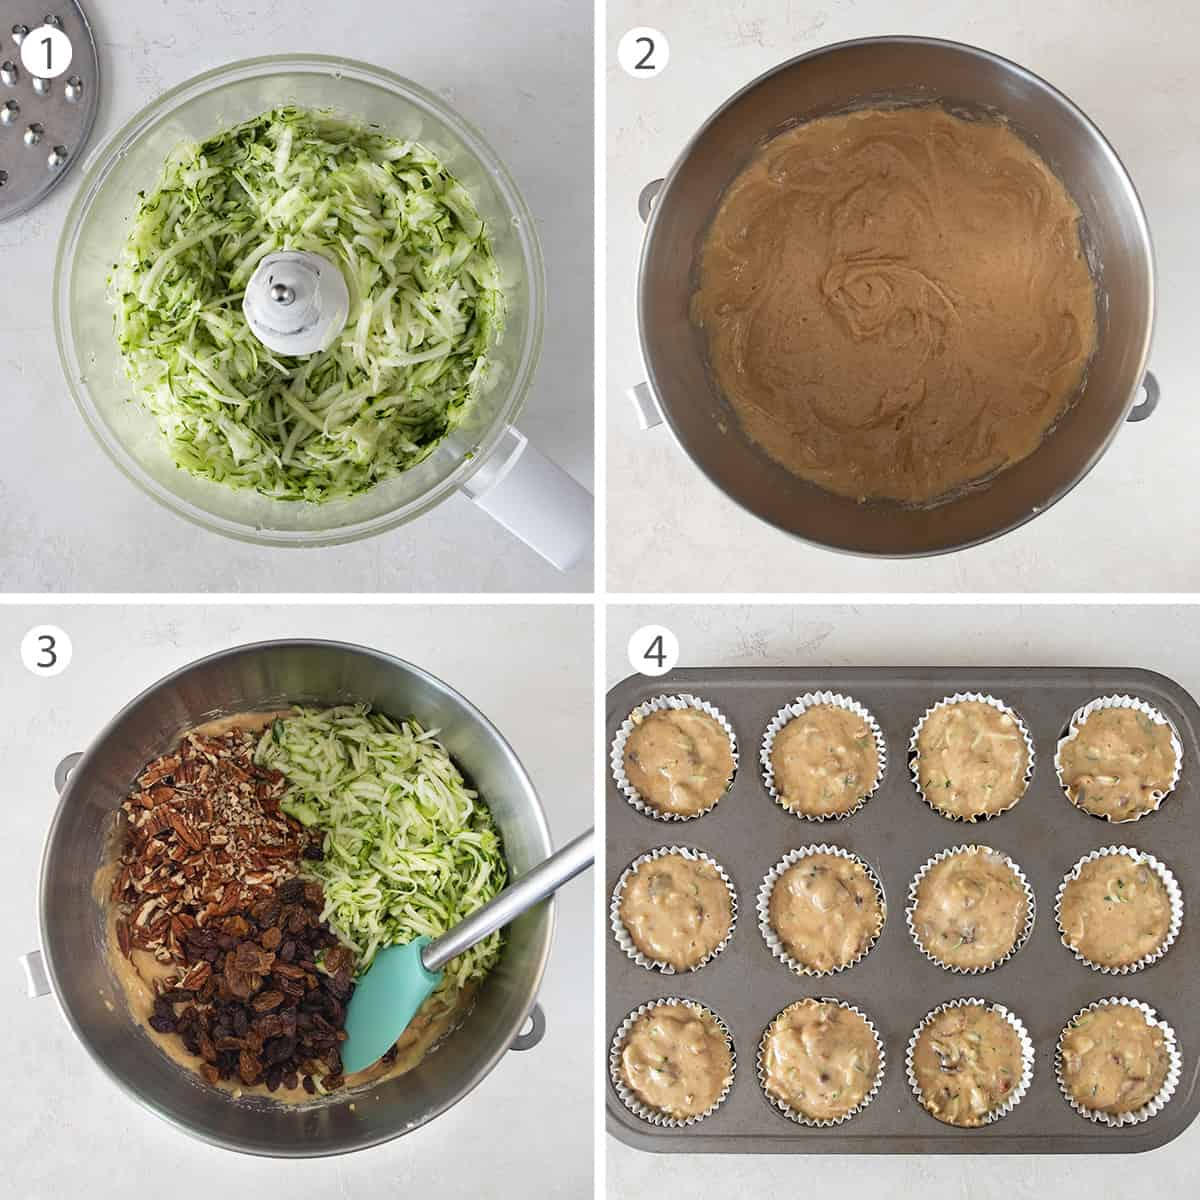 Collage of instructions to make zucchini bread muffins including shredding the zucchini, preparing the batter, and filling the pan.